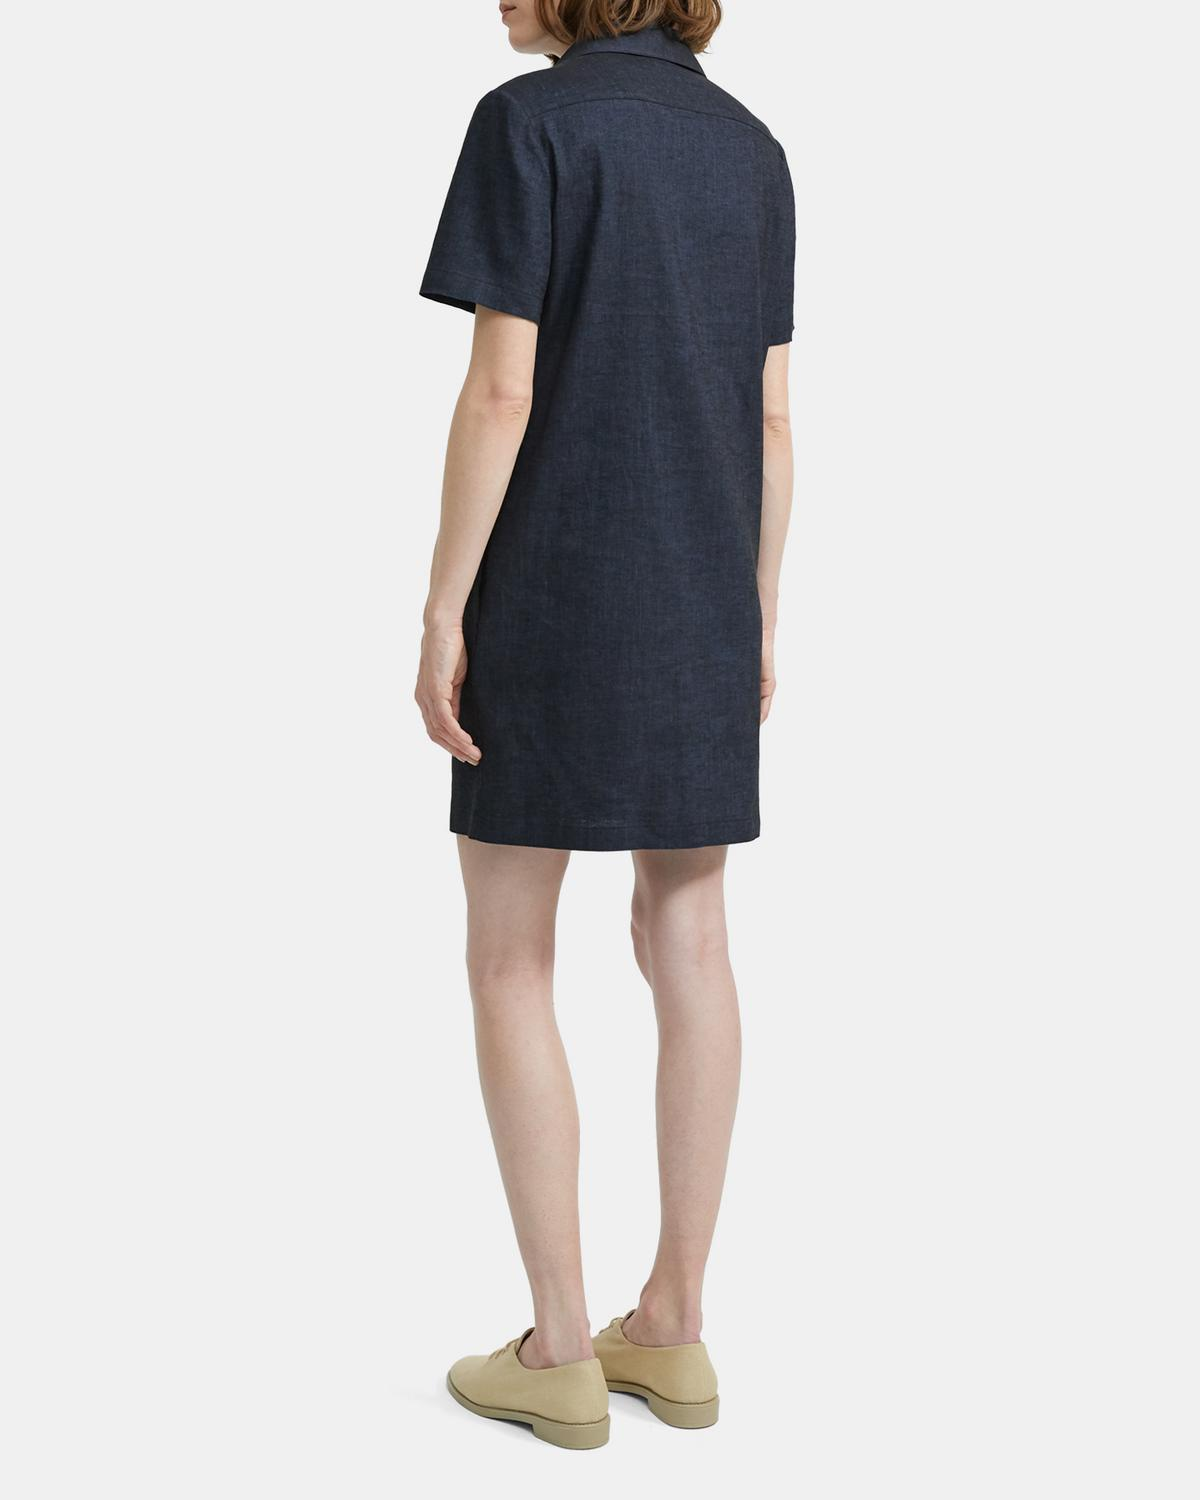 Button-Down Dress in Textured Good Linen